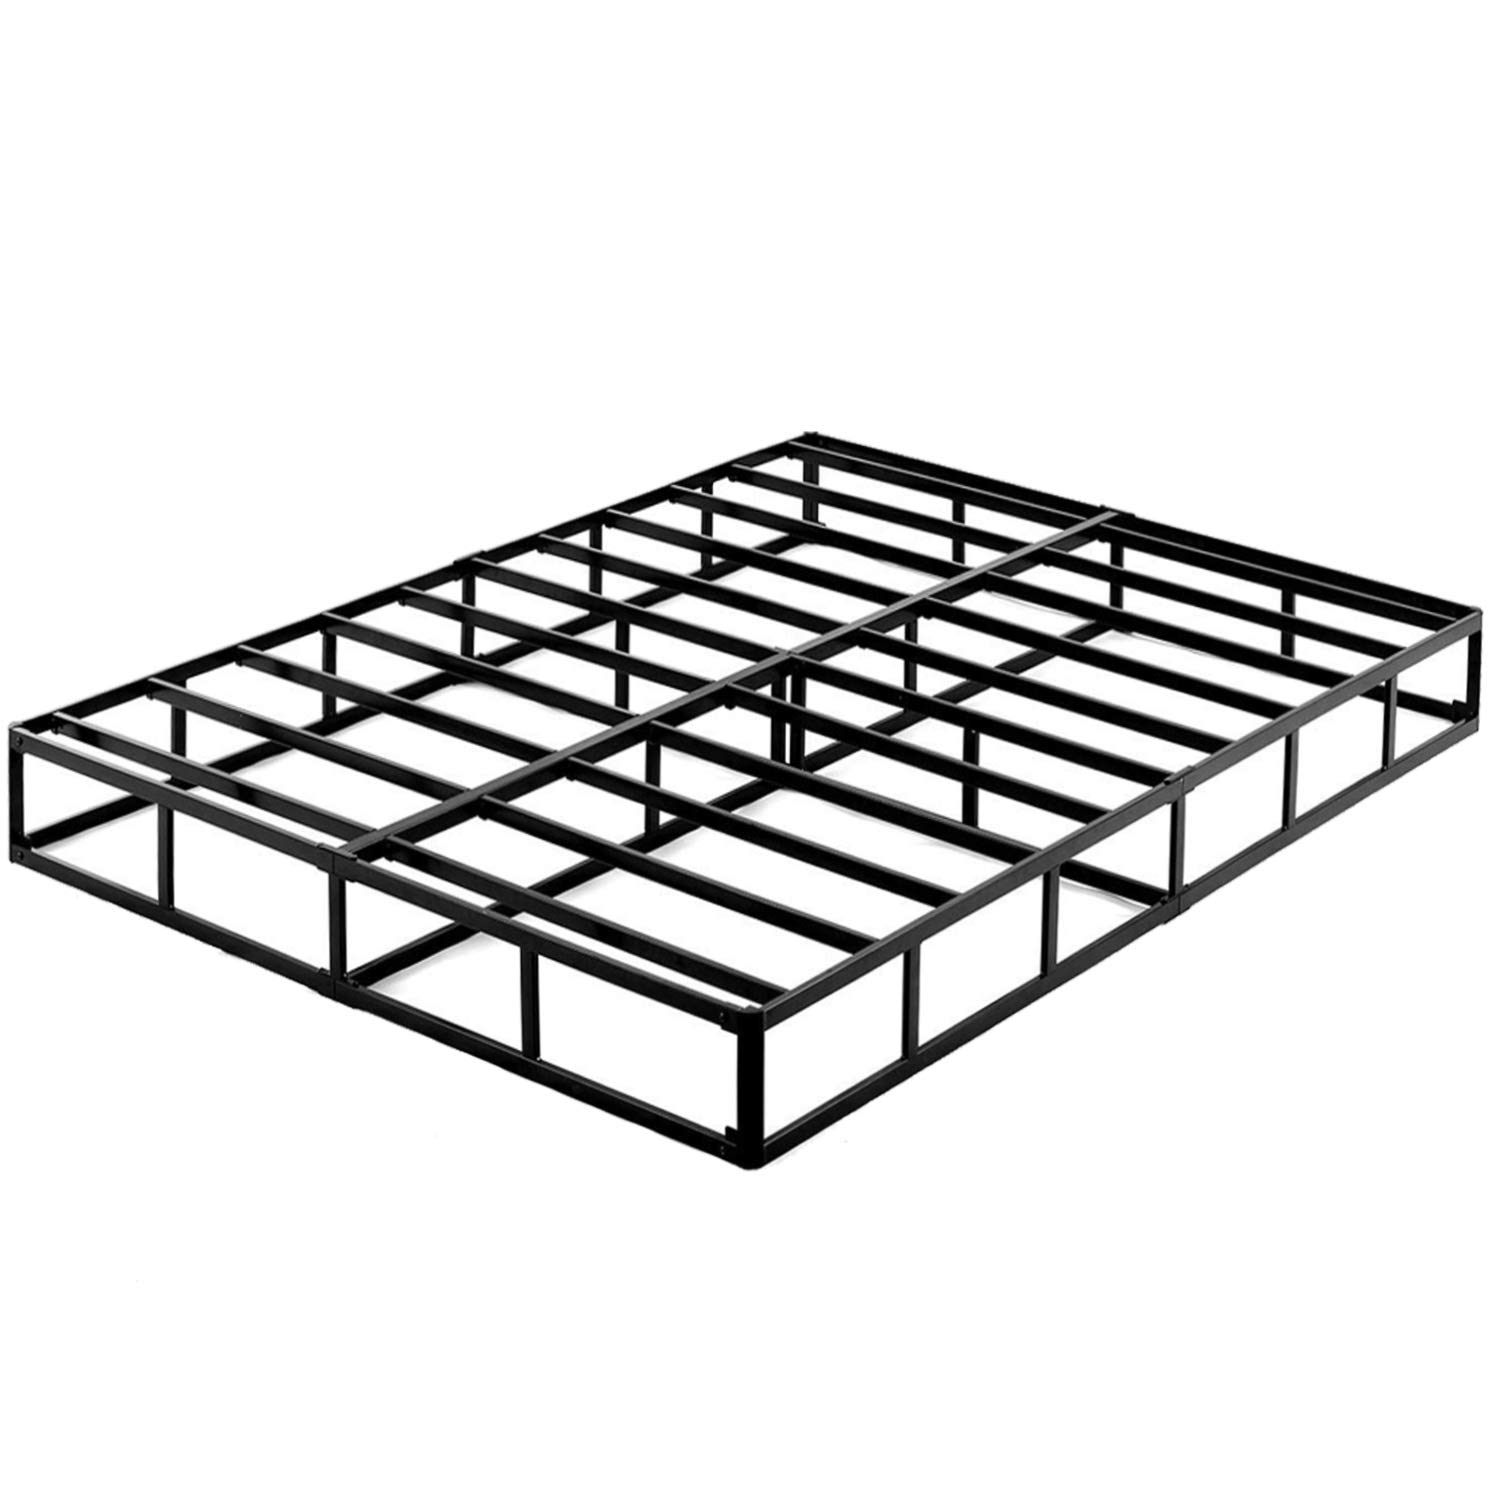 ZIYOO 9 Inch High Profile Box Spring/Easy Assembly Mattress Foundation/Heavy Duty Metal Steel Slat/Integrated Structure/Quiet Noise-Free/King by ZIYOO